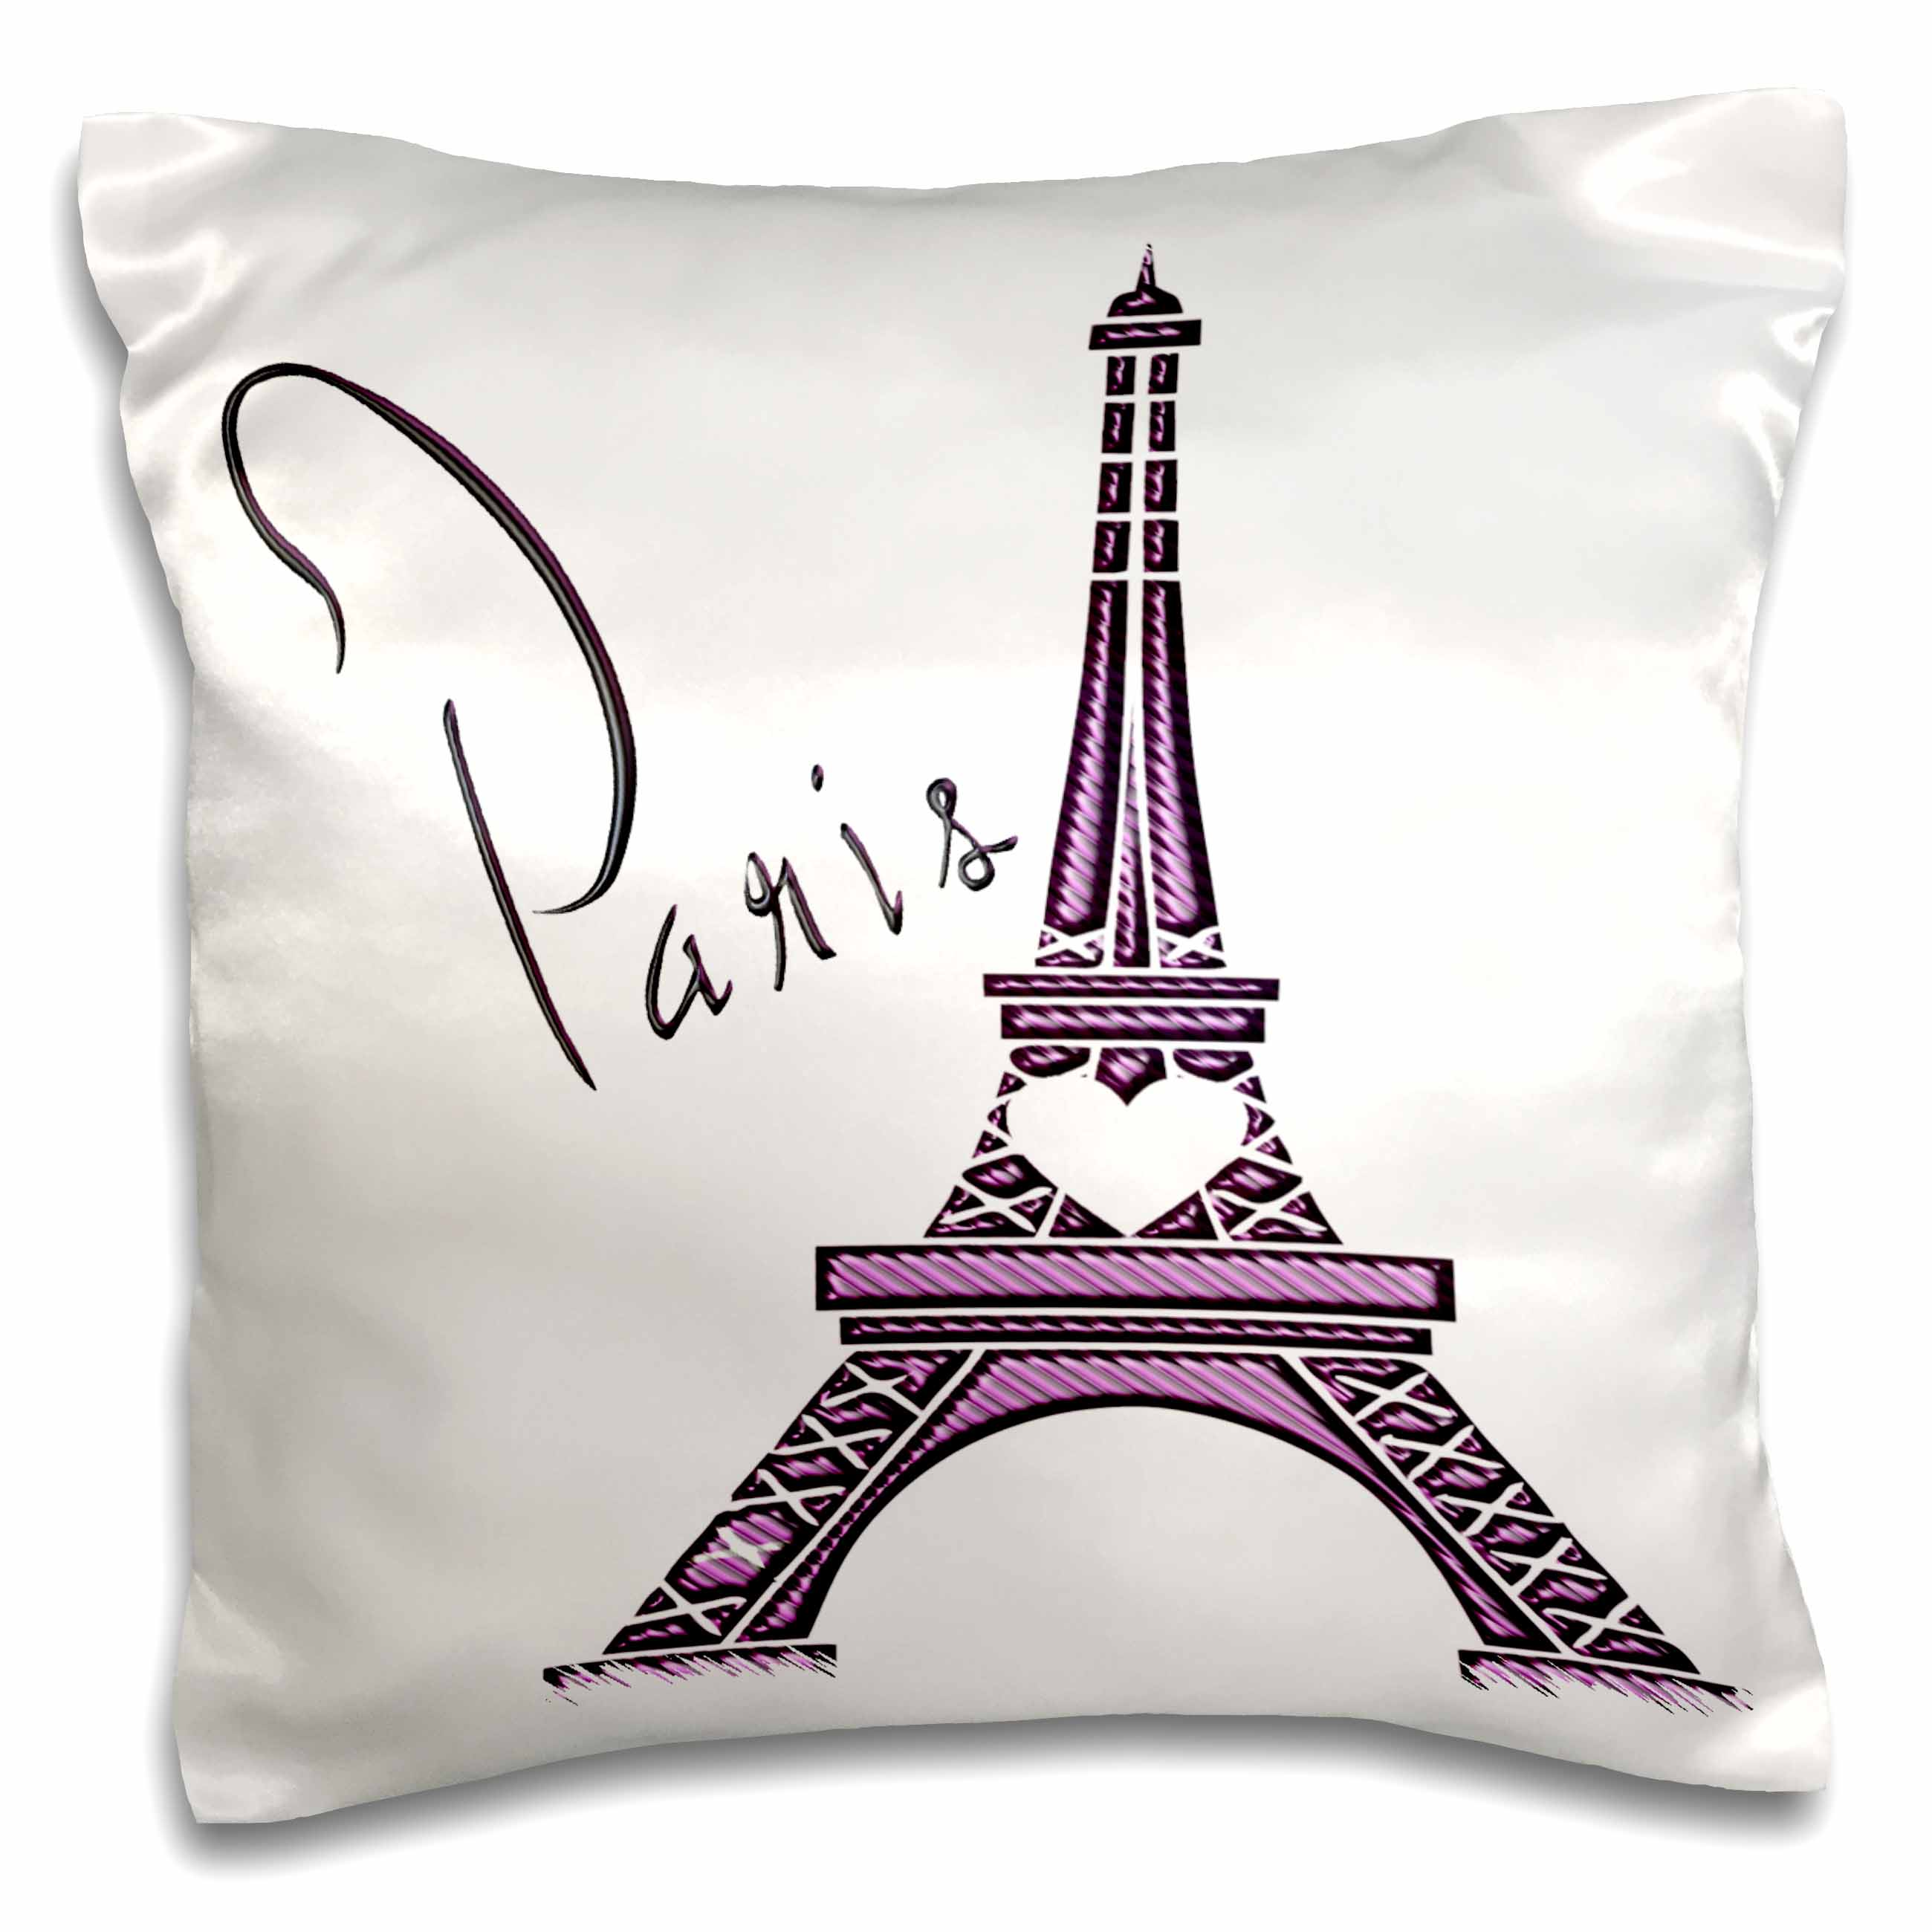 3dRose Purple Gel Effect One Dimensional Eiffel Tower With The Word Paris, Pillow Case, 16 by 16-inch